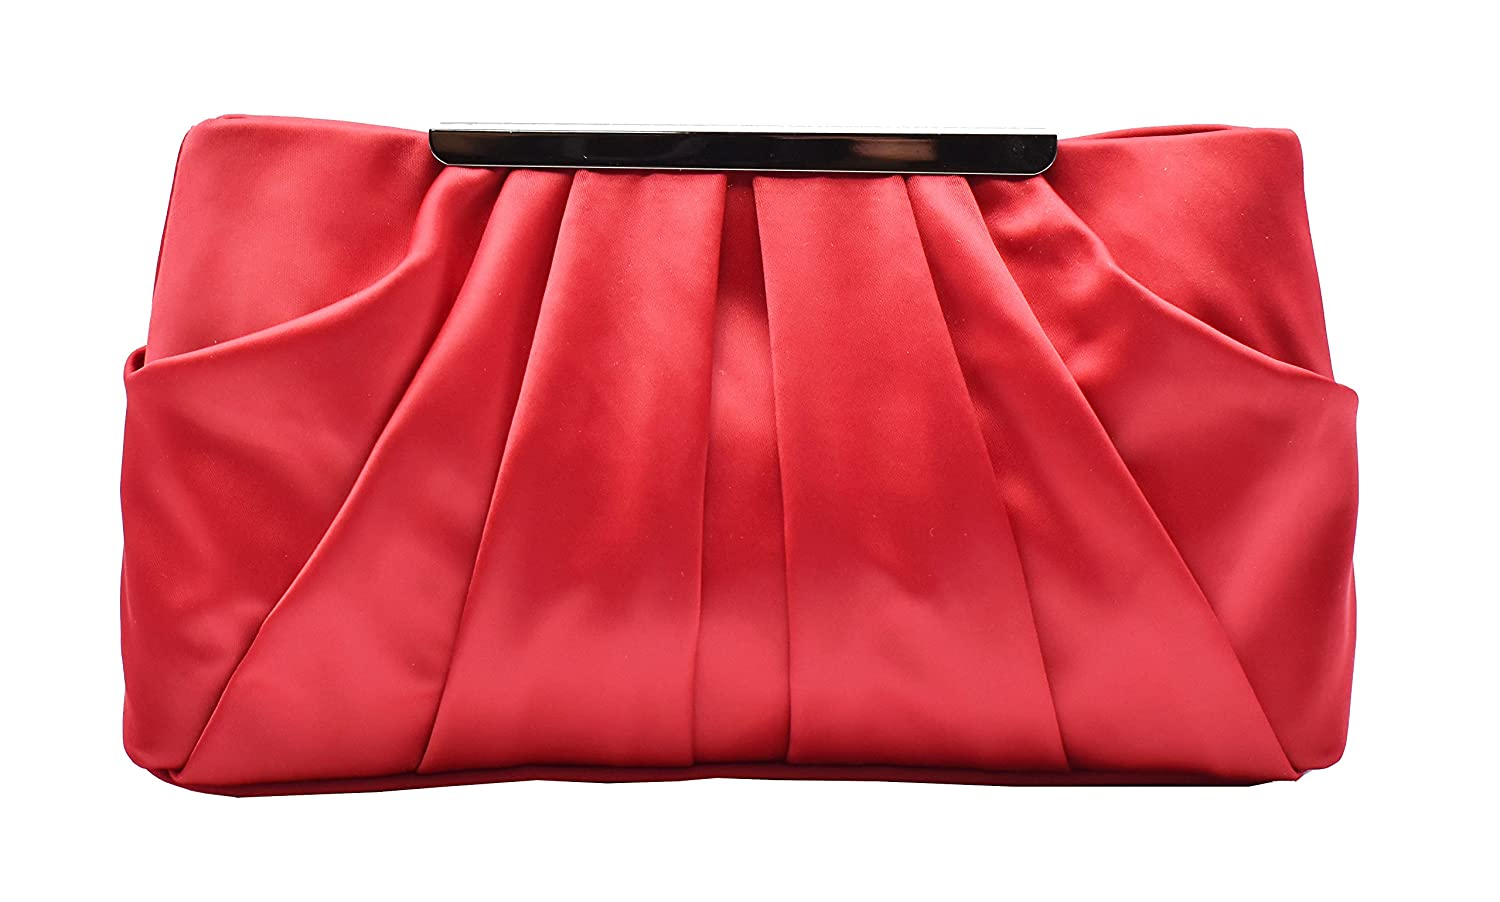 Womens Pleated Satin Evening Handbag Clutch With Detachable Chain Strap Wedding Cocktail Party Bag YH17002BE